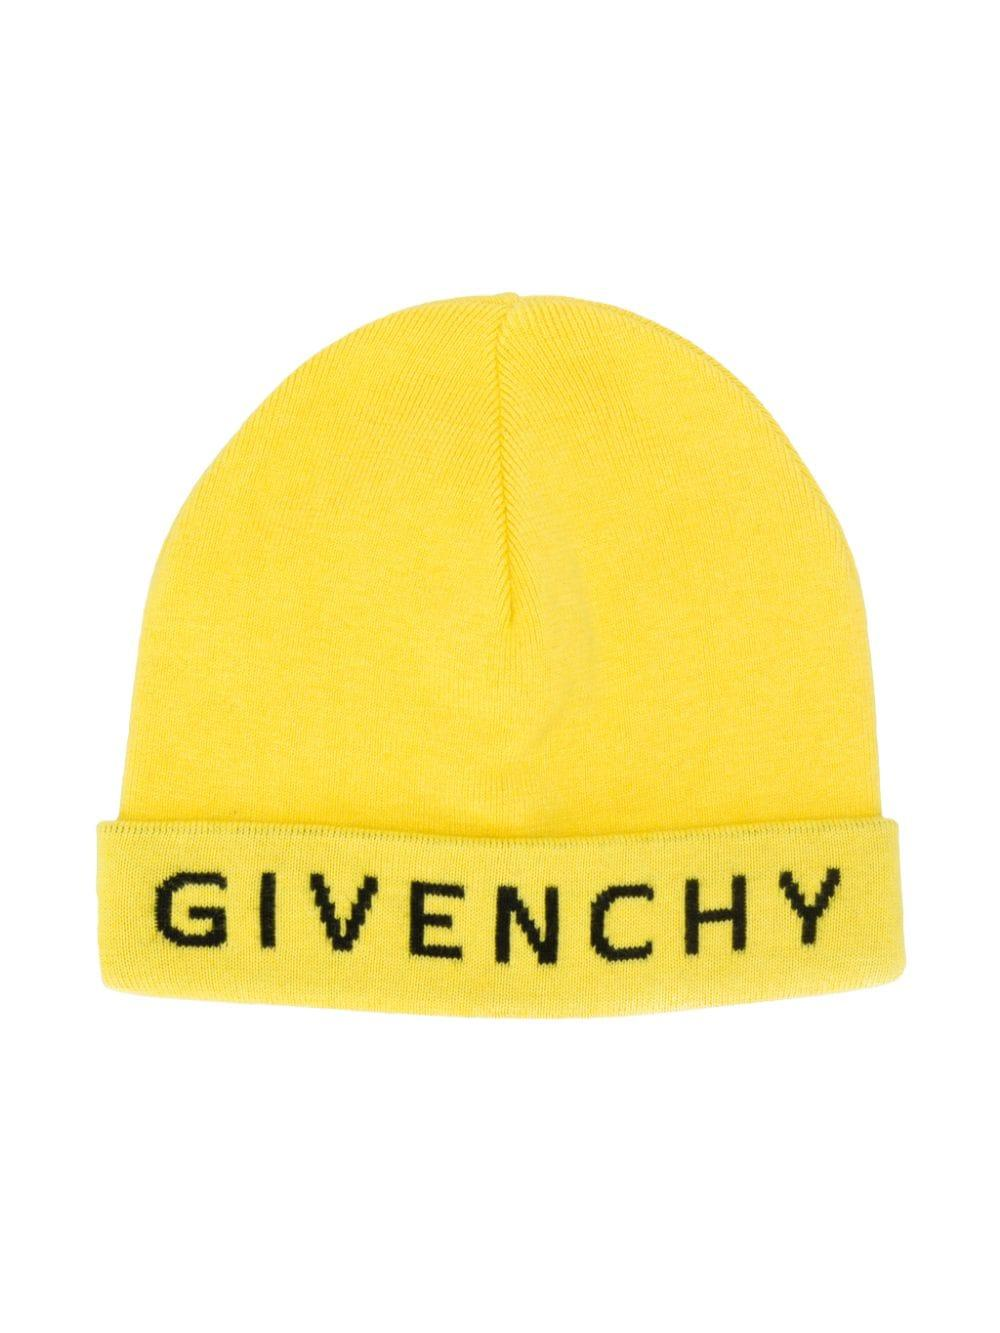 54feb701b Givenchy Logo Beanie Hat in Yellow for Men - Save 33% - Lyst